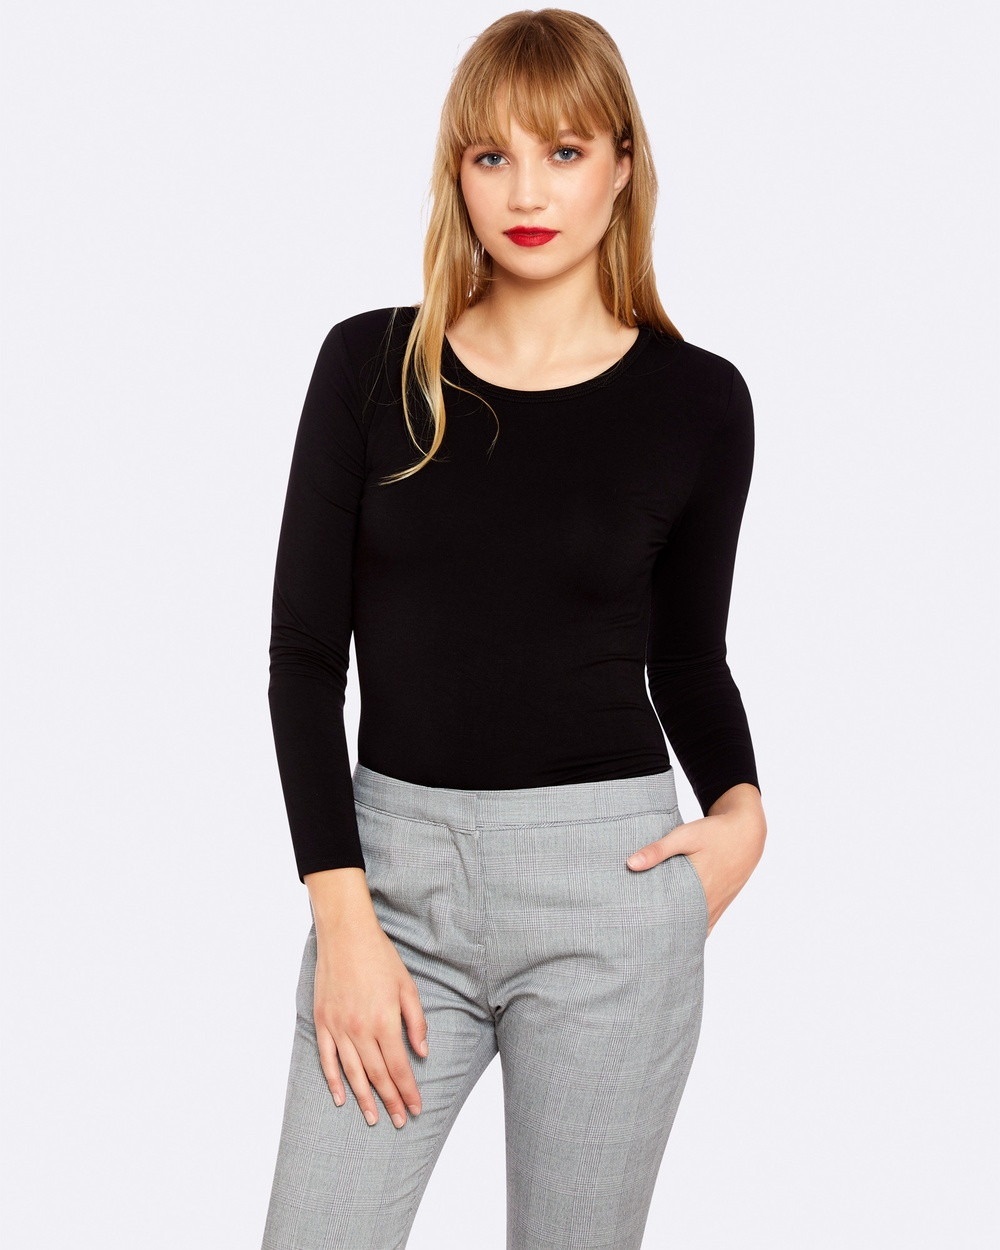 Oxford MAYA LONG SLEEVE T SHIRT Tops Black MAYA LONG SLEEVE T-SHIRT